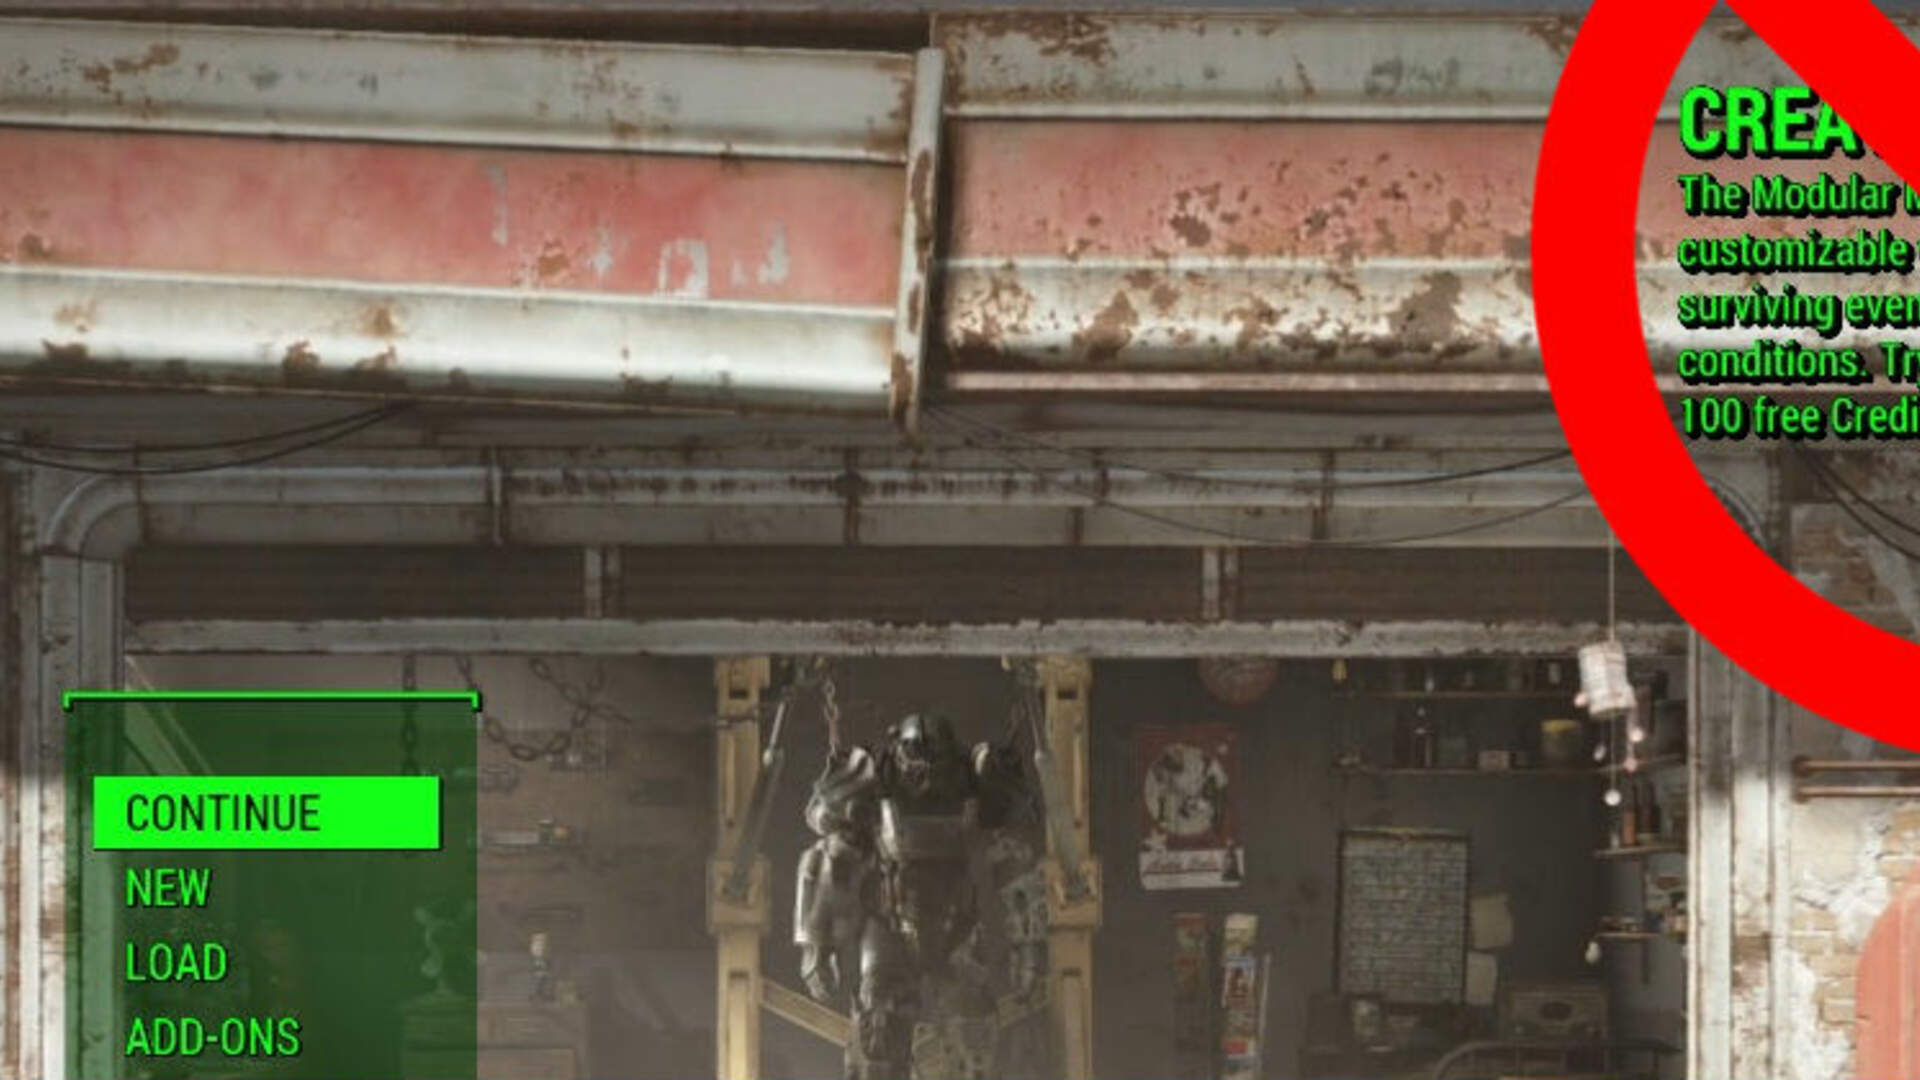 Some Fallout 4 Users Hate Creation Club so Much They Modded out a Menu Notification for It